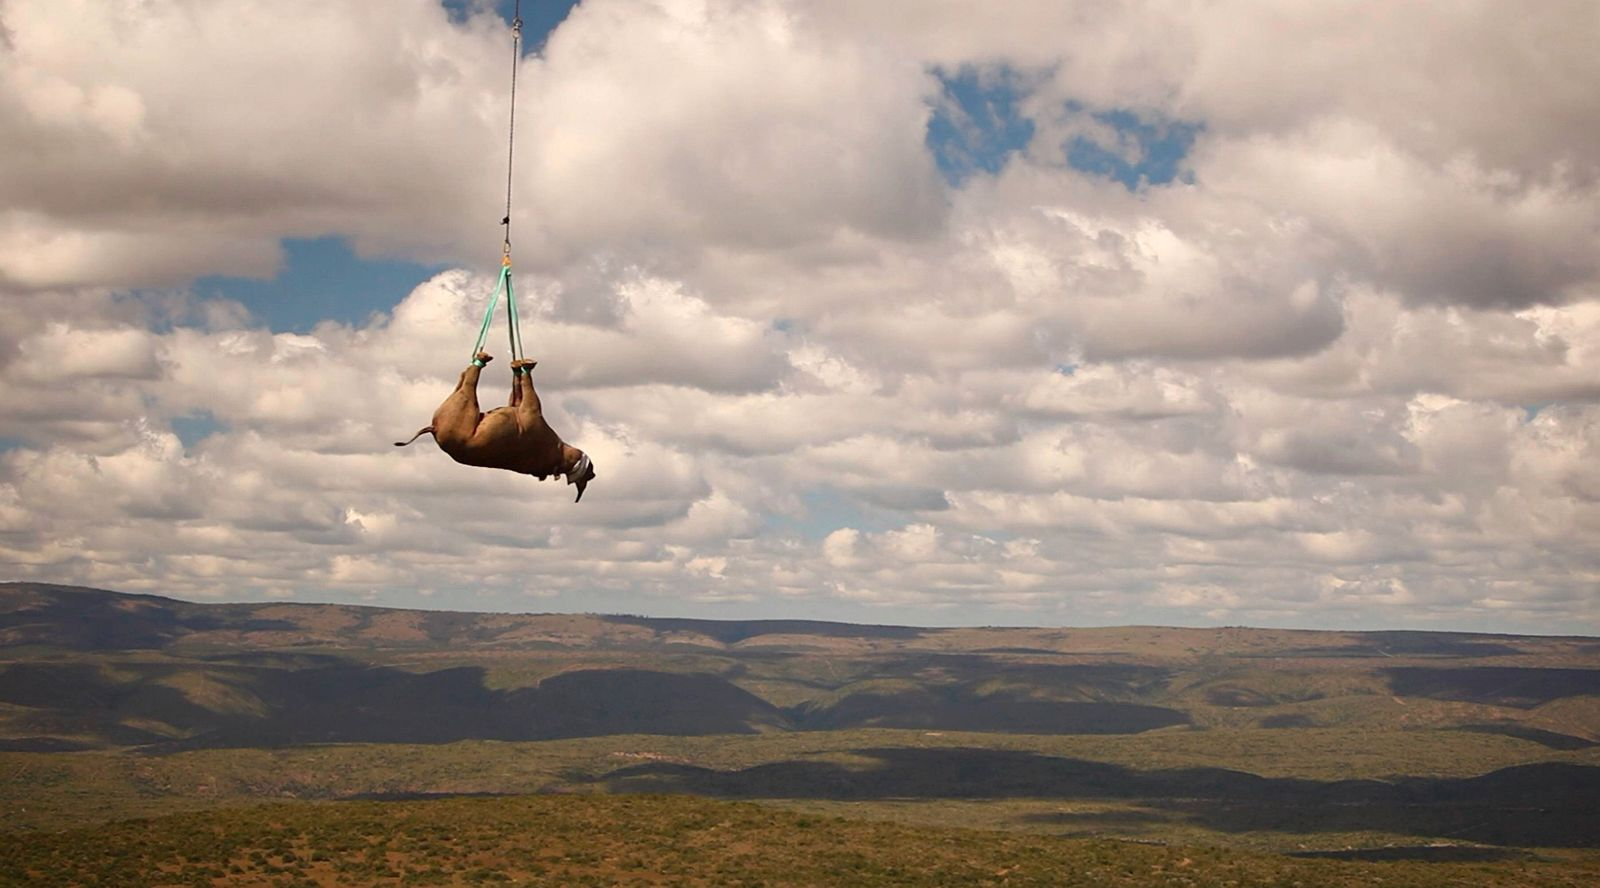 Nov. 03, 2011 - Eastern Cape, South Africa - Black rhino being transported by helicopter to an await